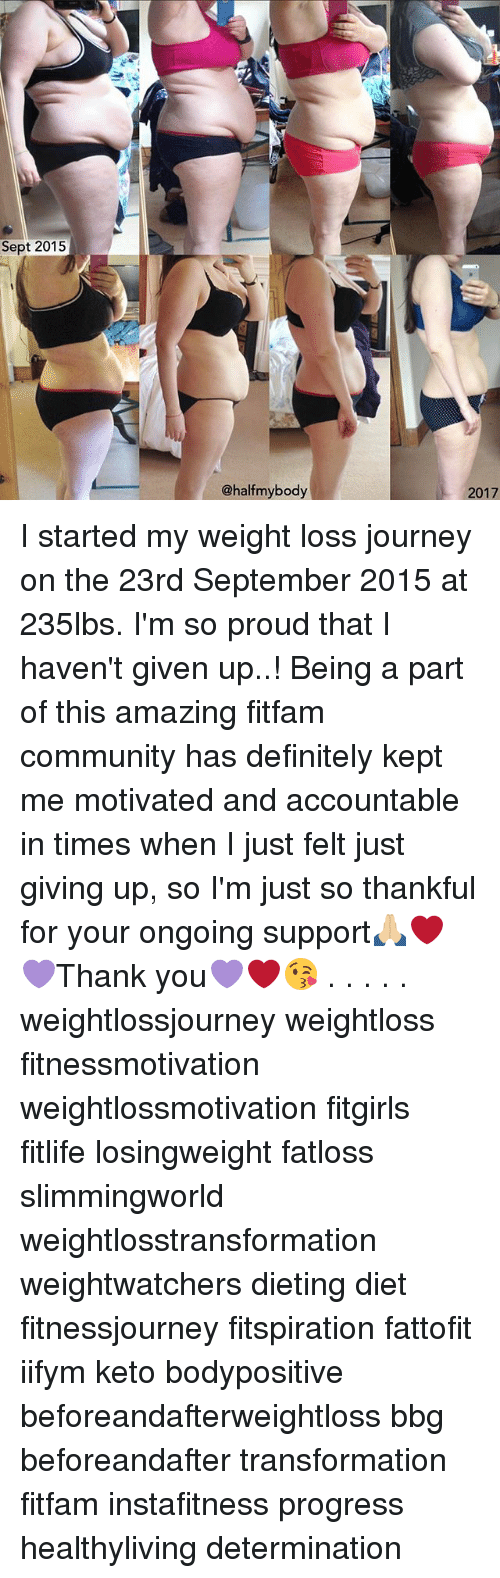 Keto: Sept 2015  @halfmybody  2017 I started my weight loss journey on the 23rd September 2015 at 235lbs. I'm so proud that I haven't given up..! Being a part of this amazing fitfam community has definitely kept me motivated and accountable in times when I just felt just giving up, so I'm just so thankful for your ongoing support🙏🏼❤️💜Thank you💜❤️😘 . . . . . weightlossjourney weightloss fitnessmotivation weightlossmotivation fitgirls fitlife losingweight fatloss slimmingworld weightlosstransformation weightwatchers dieting diet fitnessjourney fitspiration fattofit iifym keto bodypositive beforeandafterweightloss bbg beforeandafter transformation fitfam instafitness progress healthyliving determination